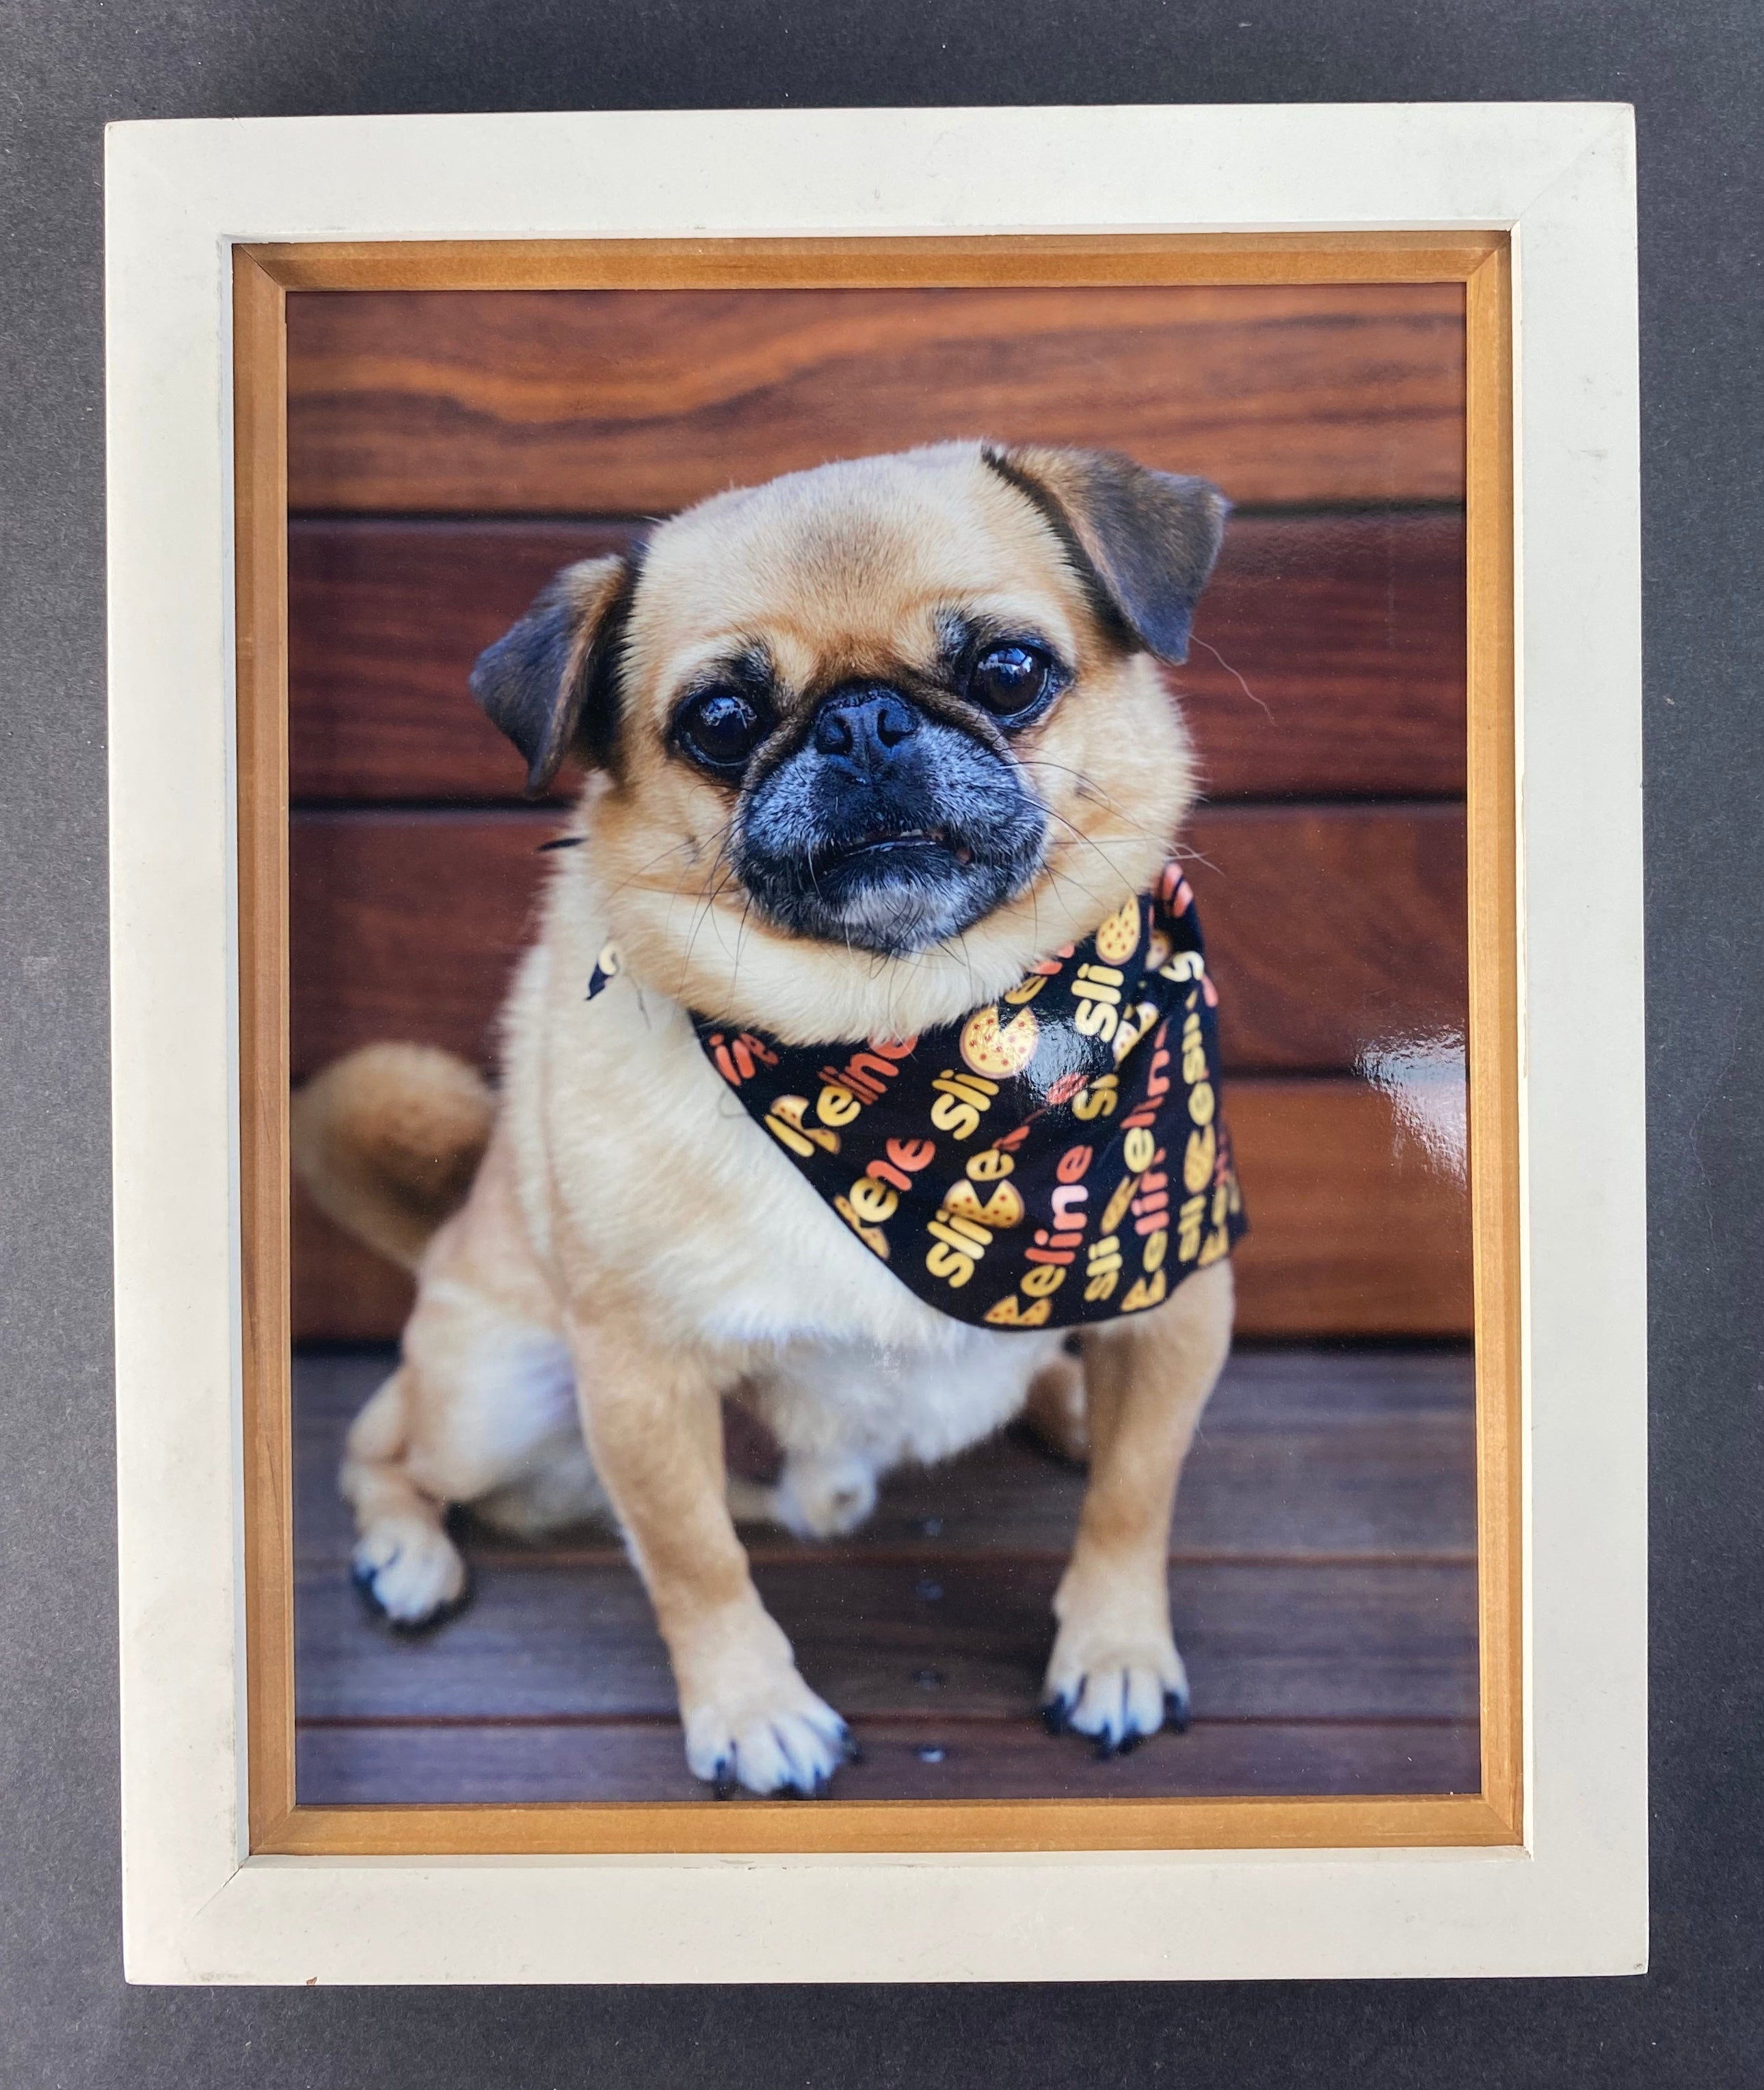 SILICON VALLEY: Sliceline Kira's Pup Framed Photo